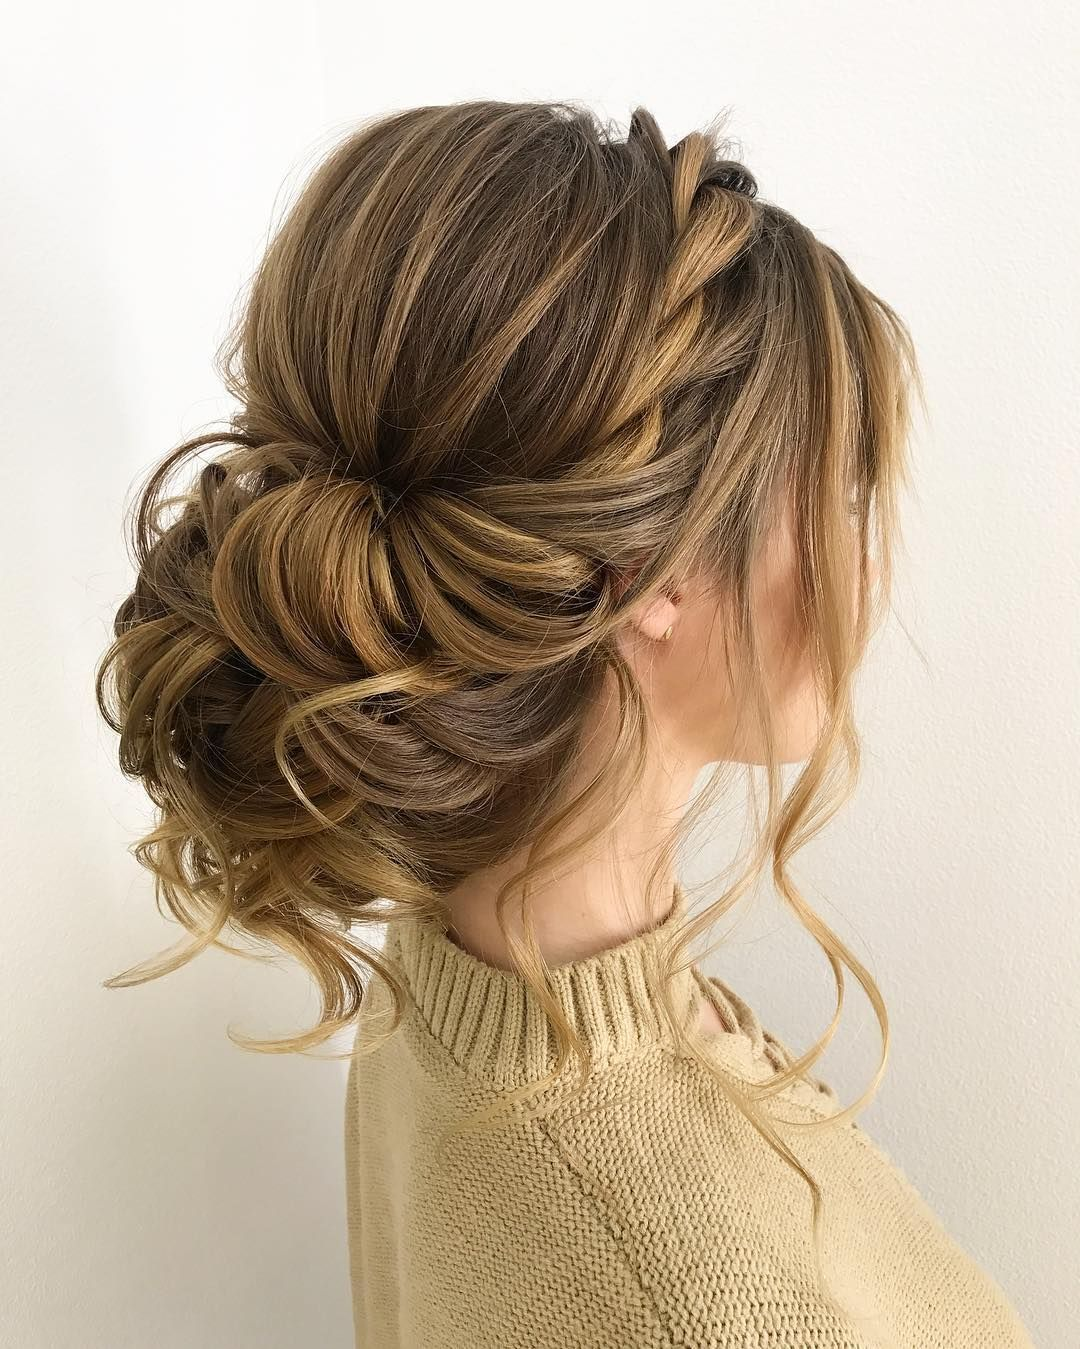 Gorgeous Wedding Updo Hairstyles That Will Wow Your Big ...